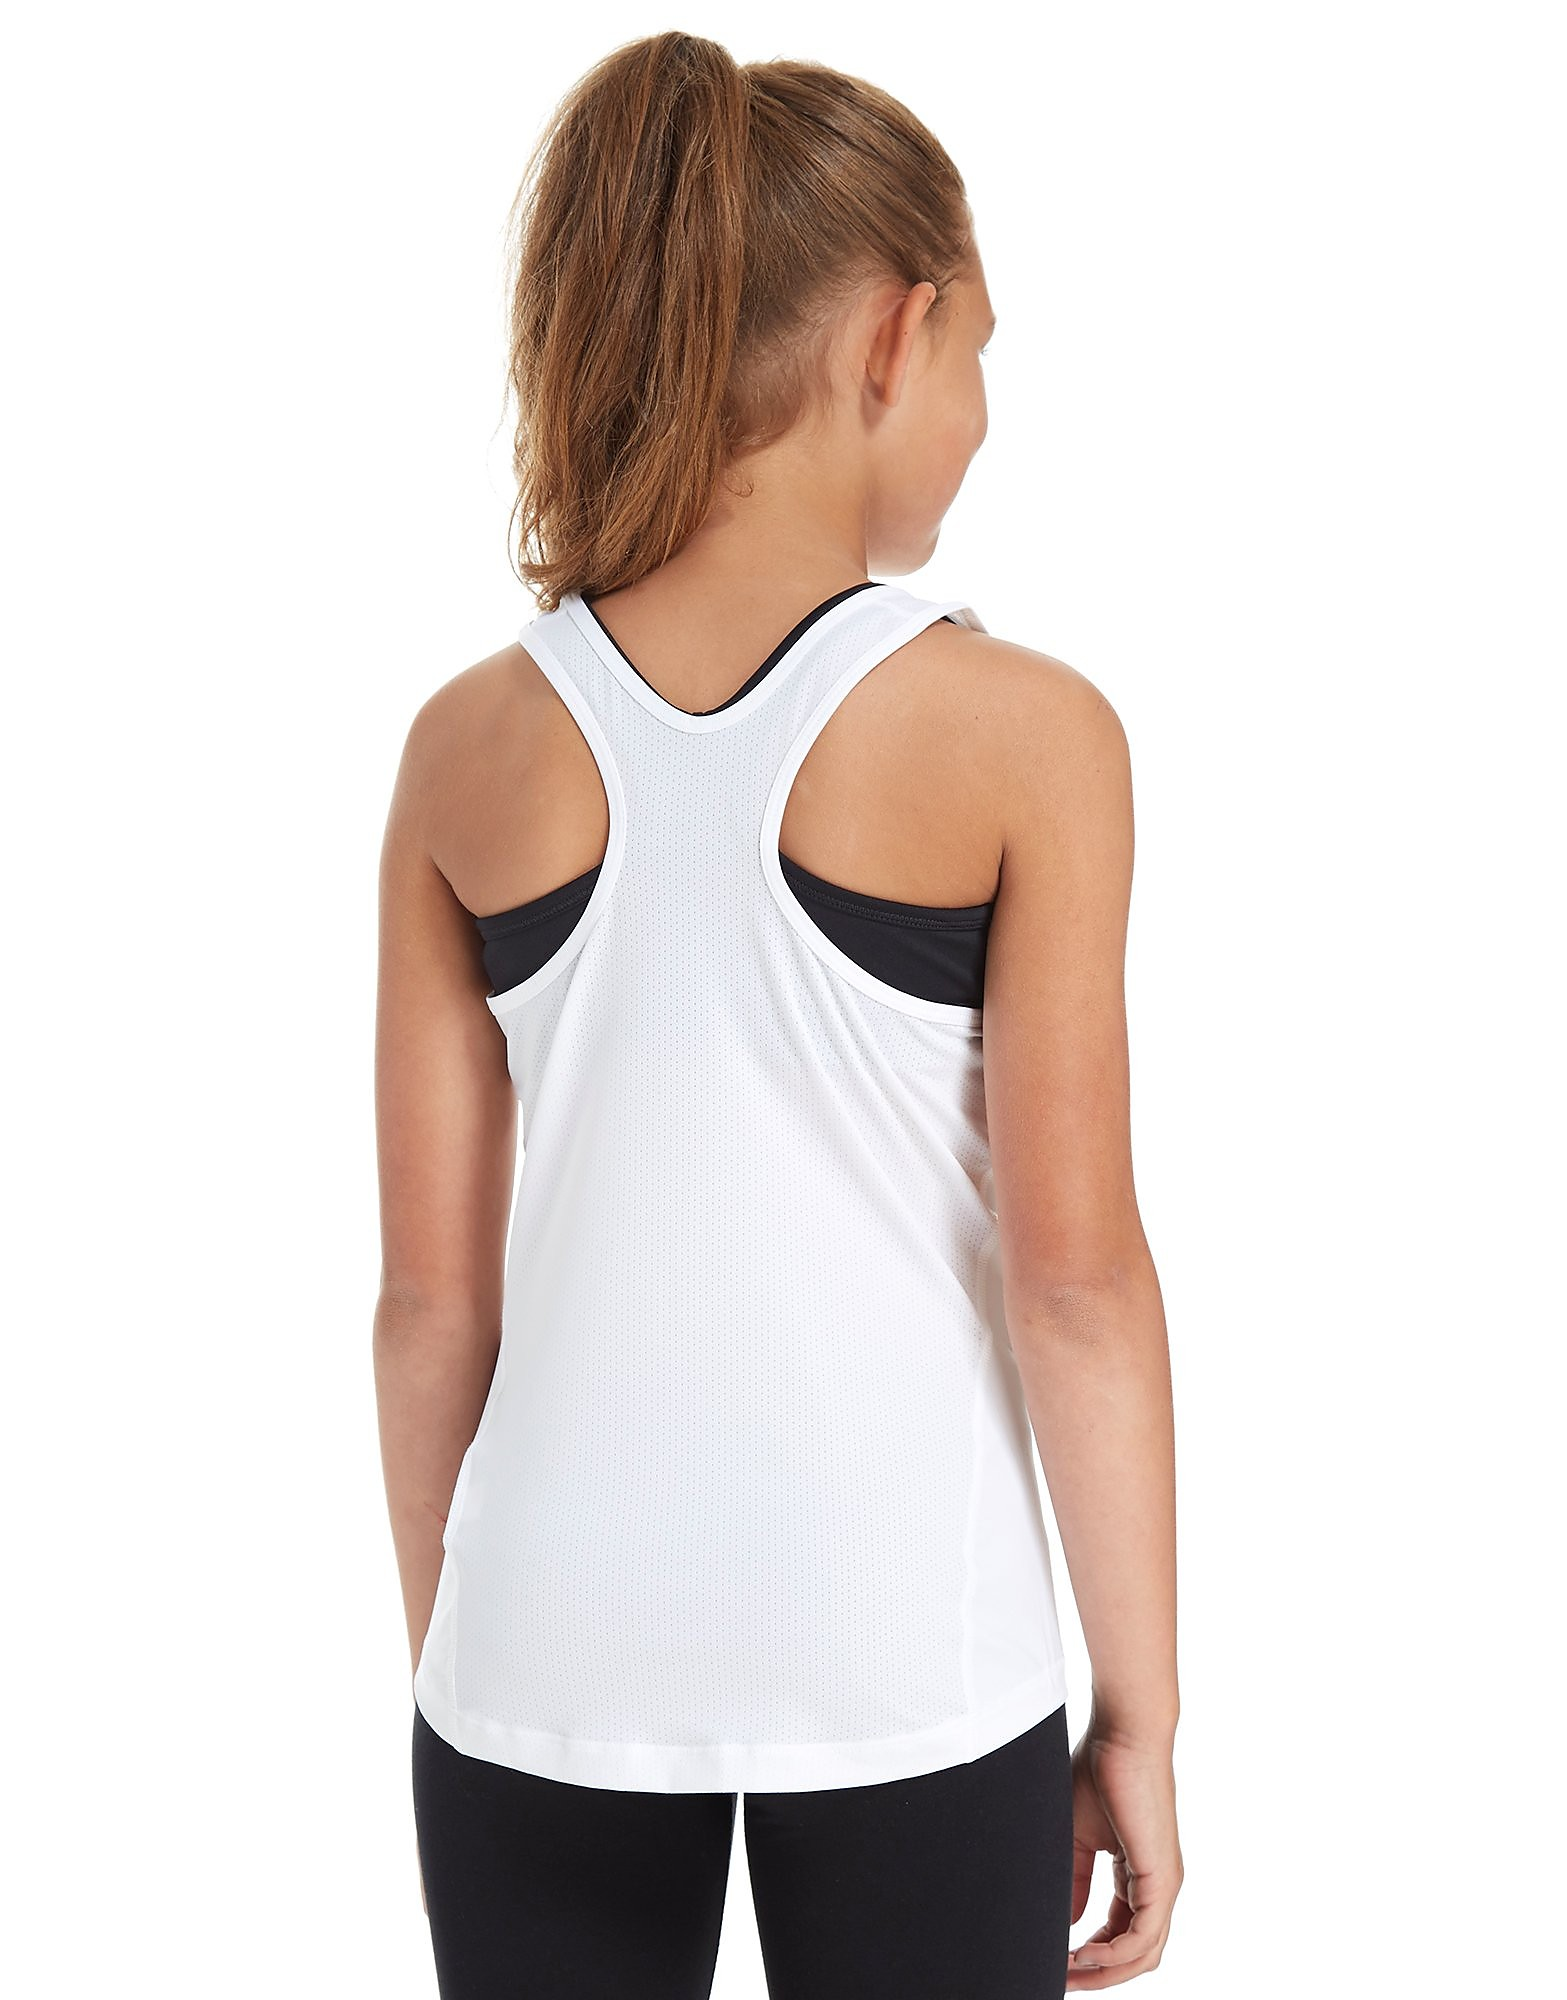 Nike Girls' Pro Cool Tank Top Junior